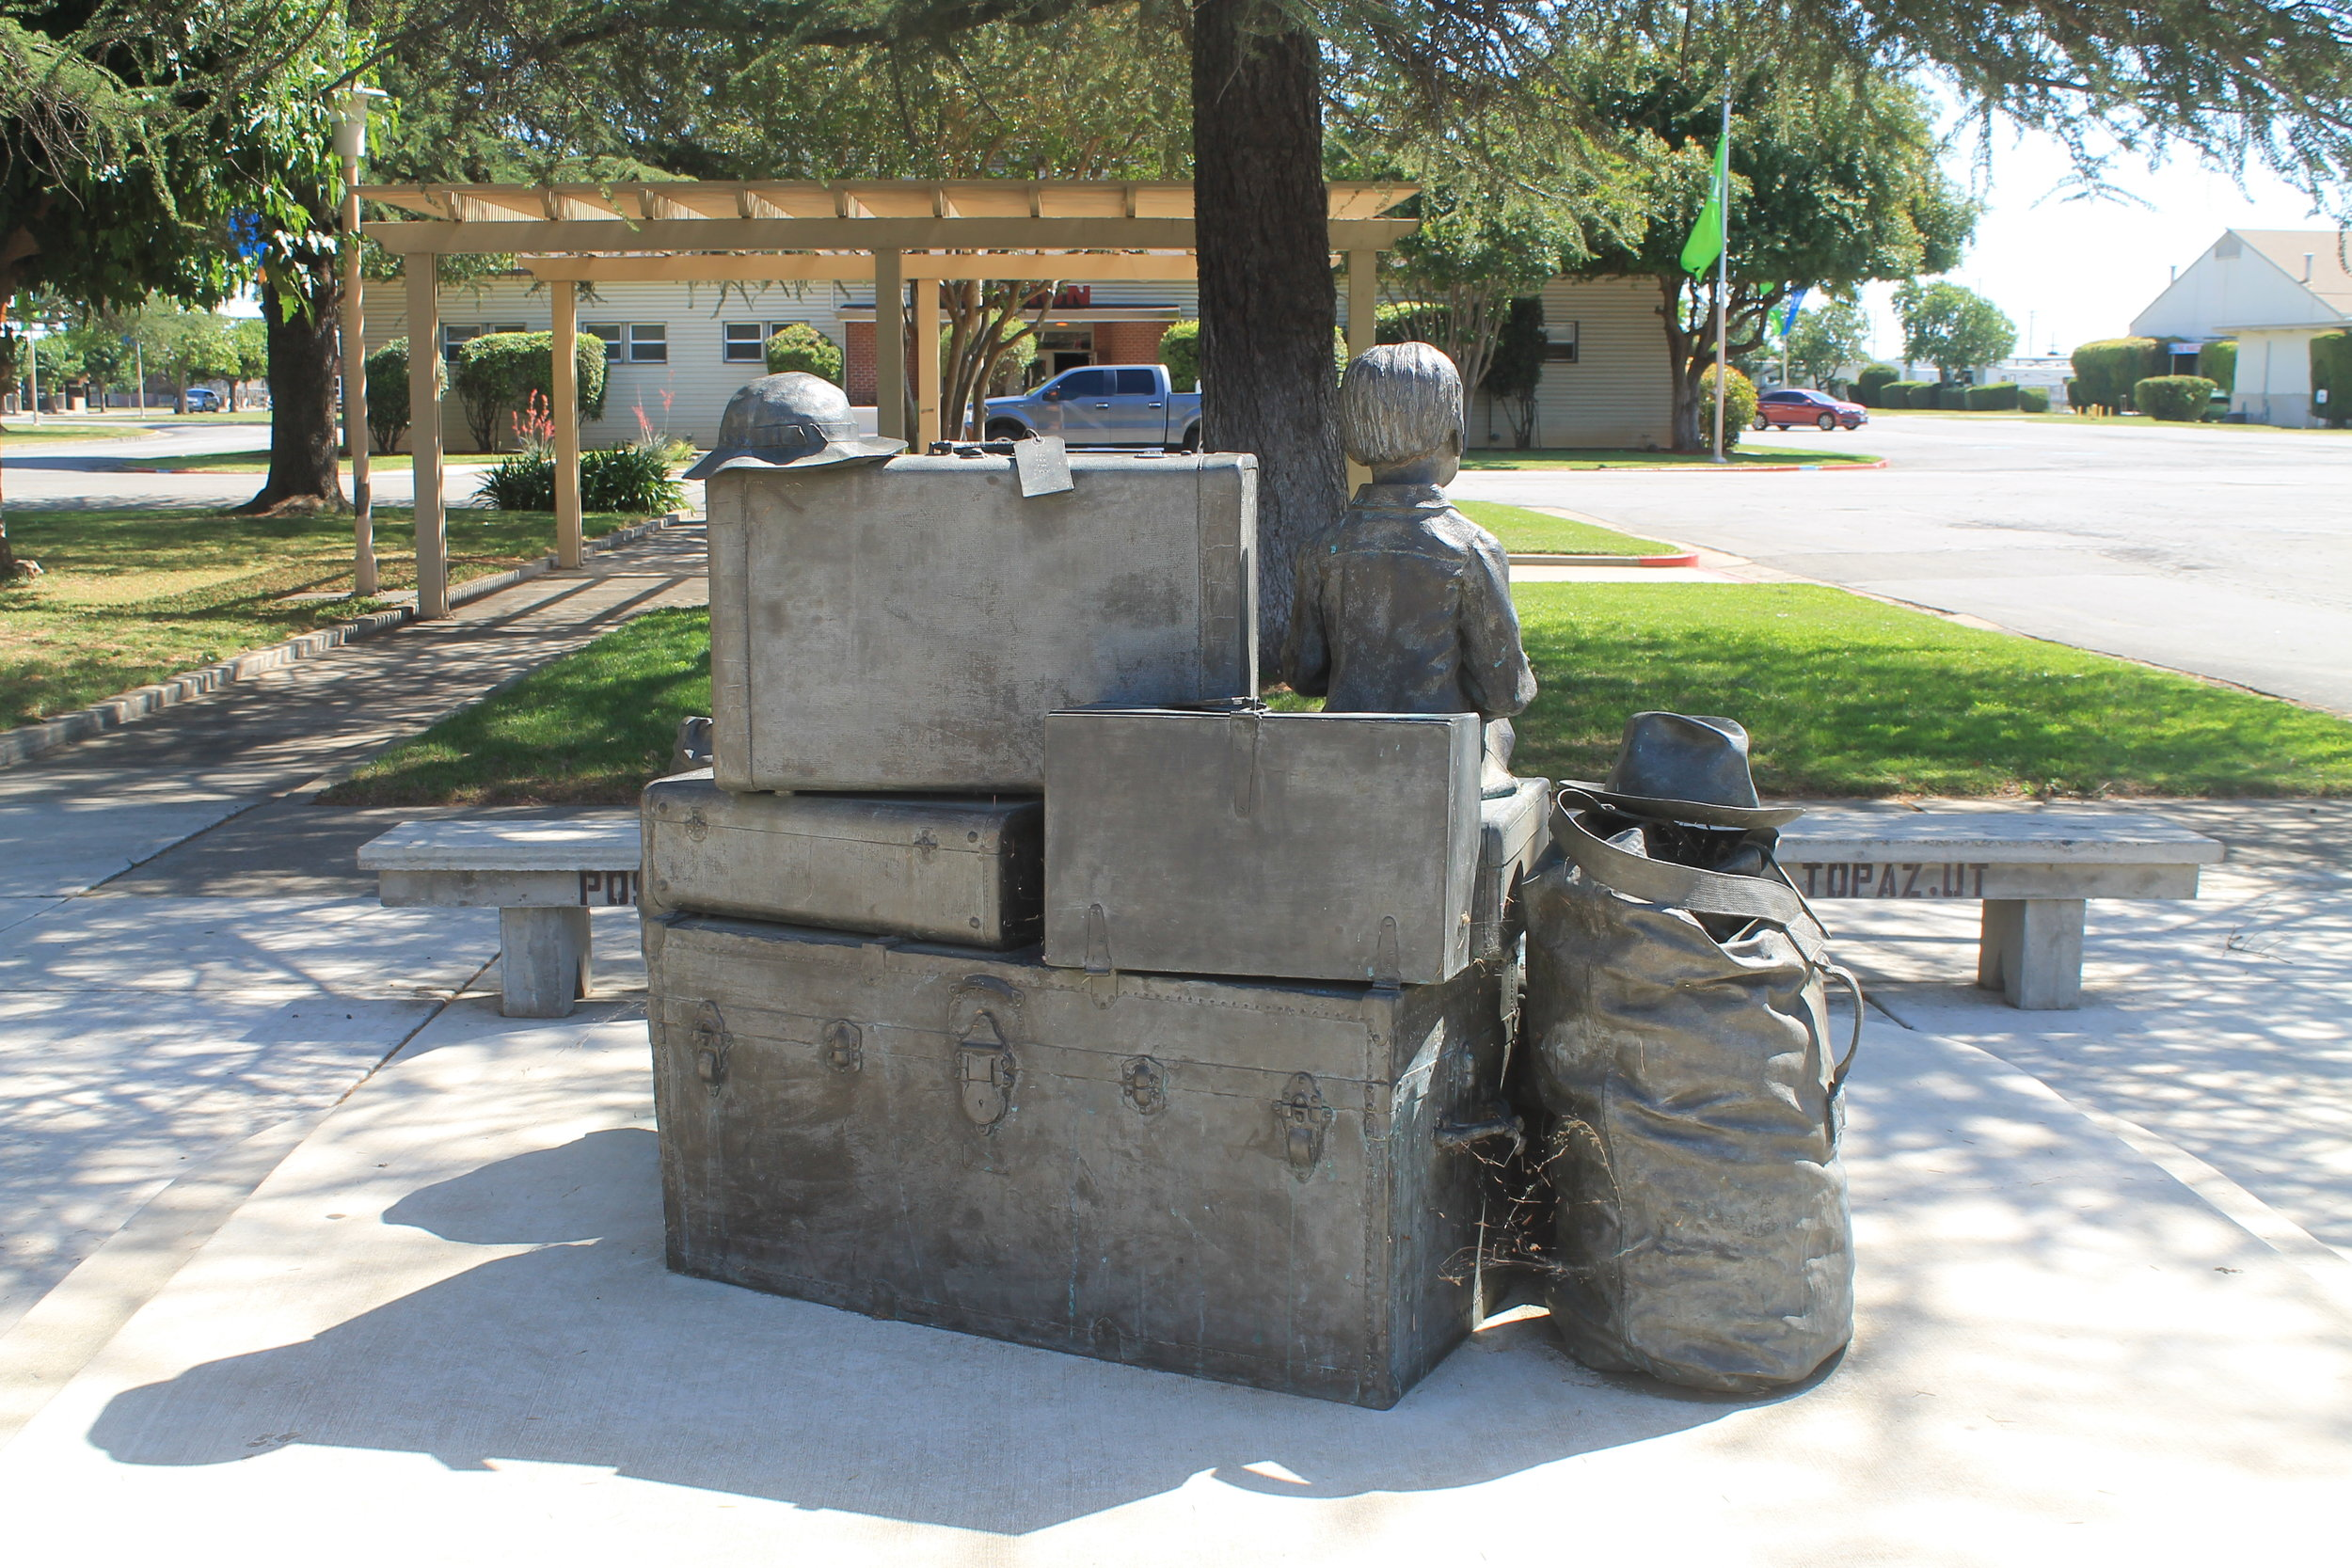 The memorial centerpiece at the Merced County Fairgrounds. The suitcases are all real, casted in bronze.